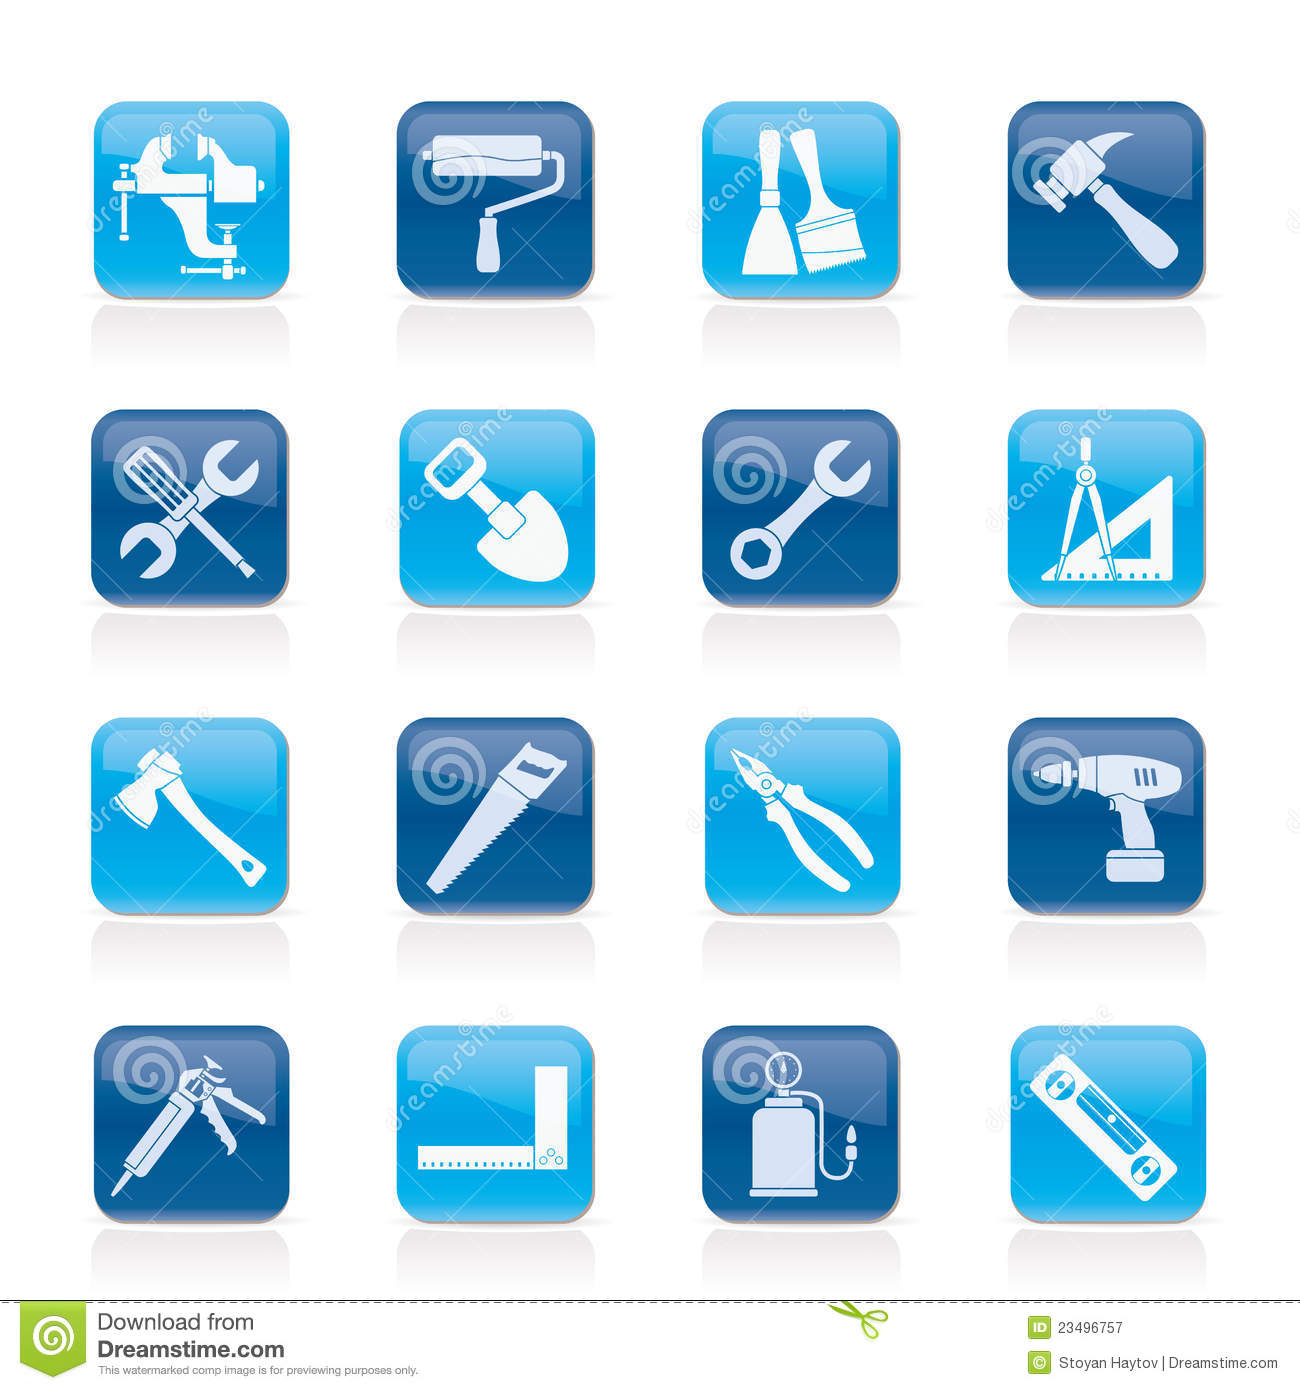 9 Blue Construction Tools Icon Images